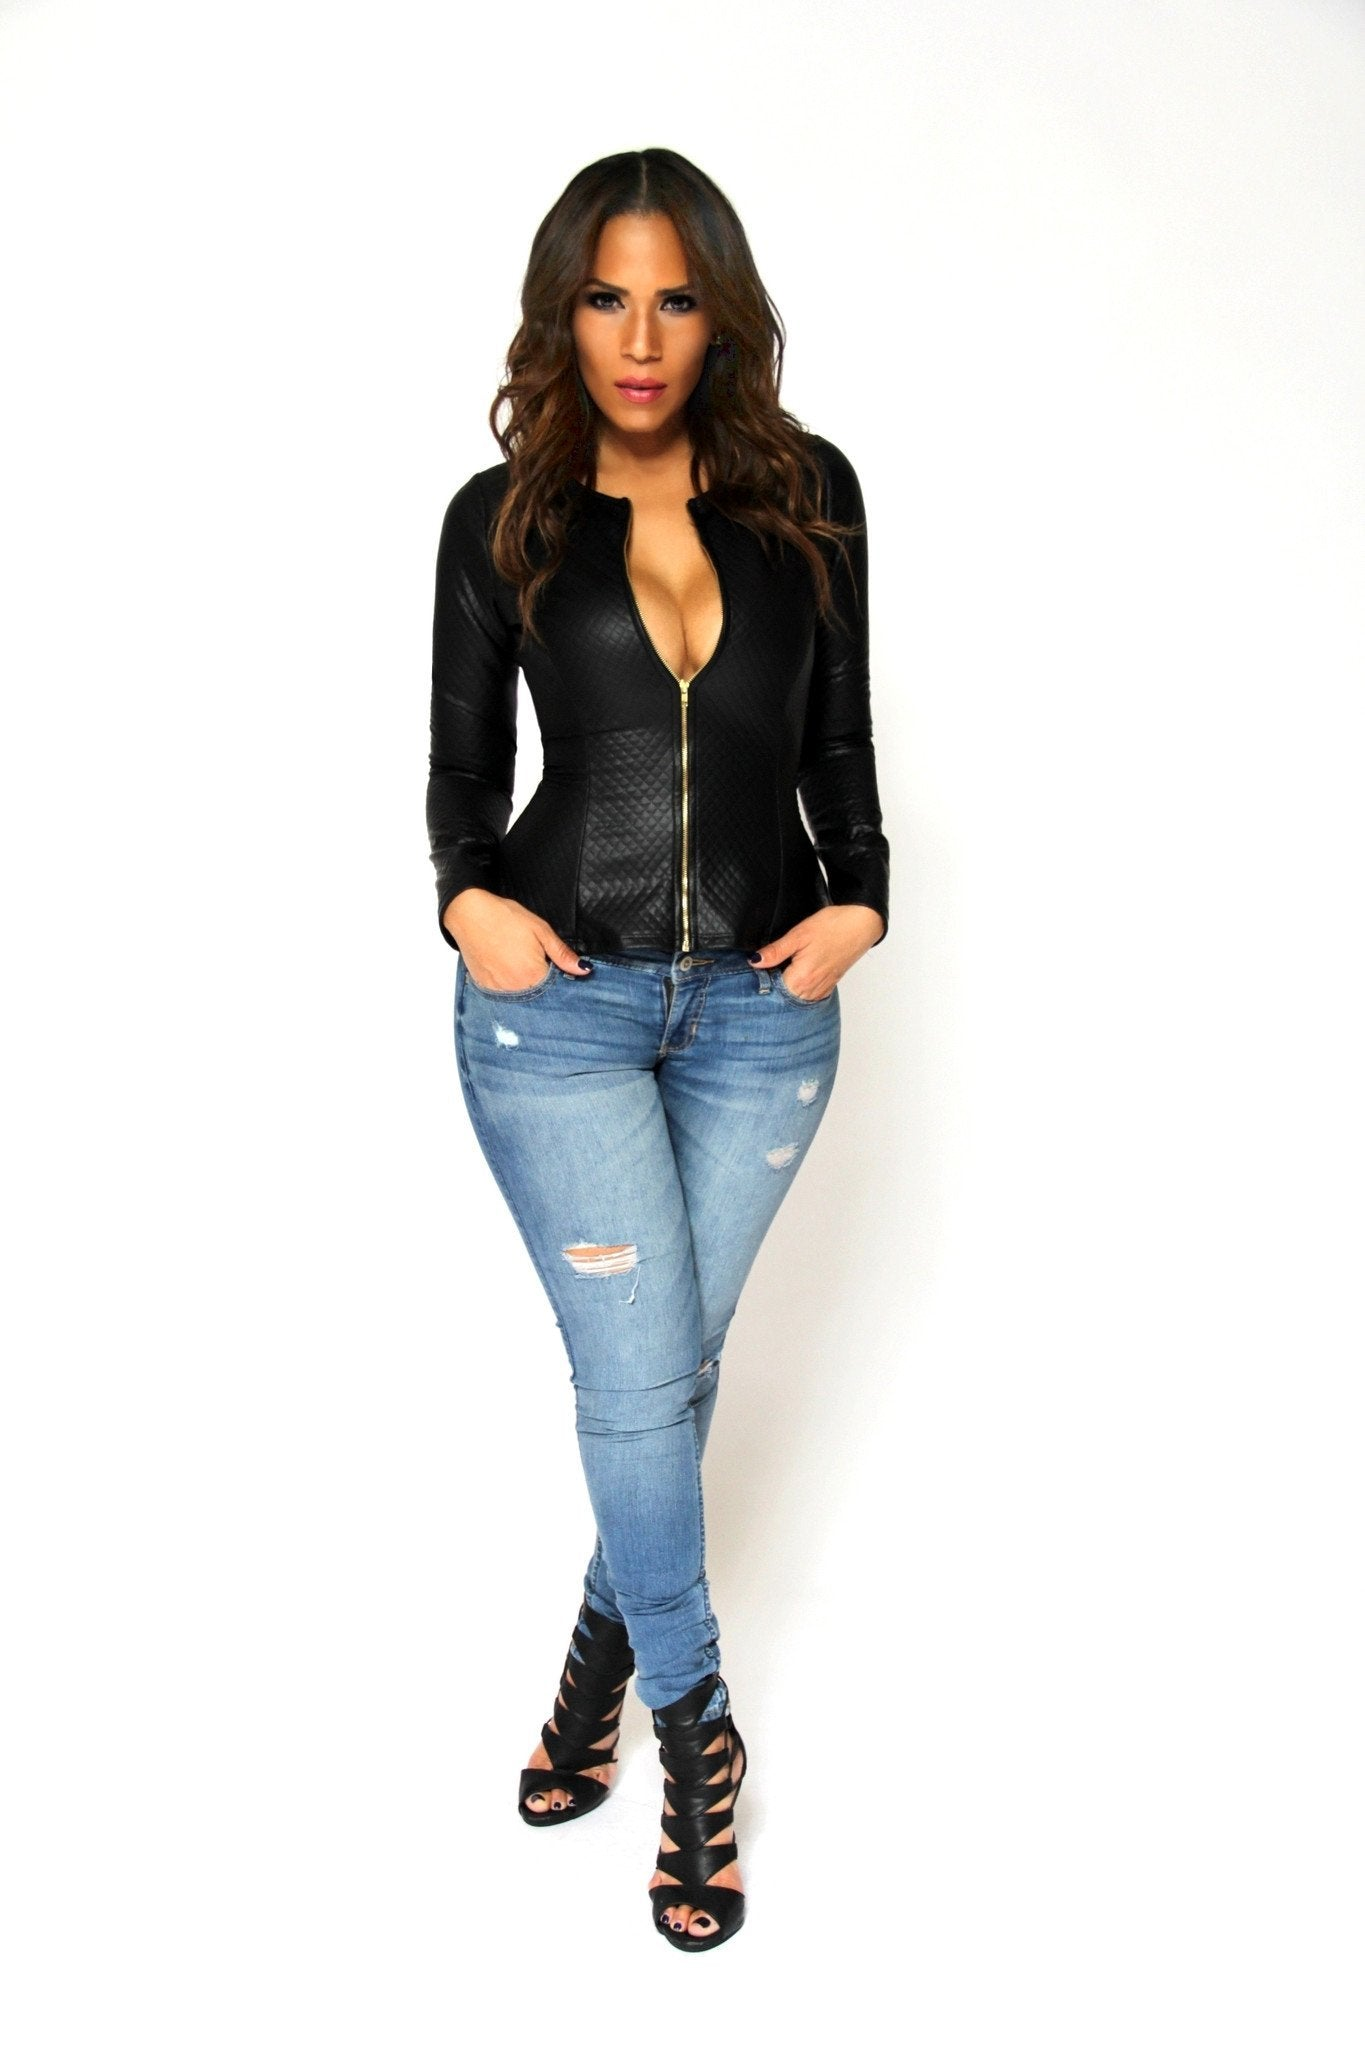 d5036480b5ceb Sexy Long Sleeves Textured Black Faux Leather Jacket - MY SEXY STYLES